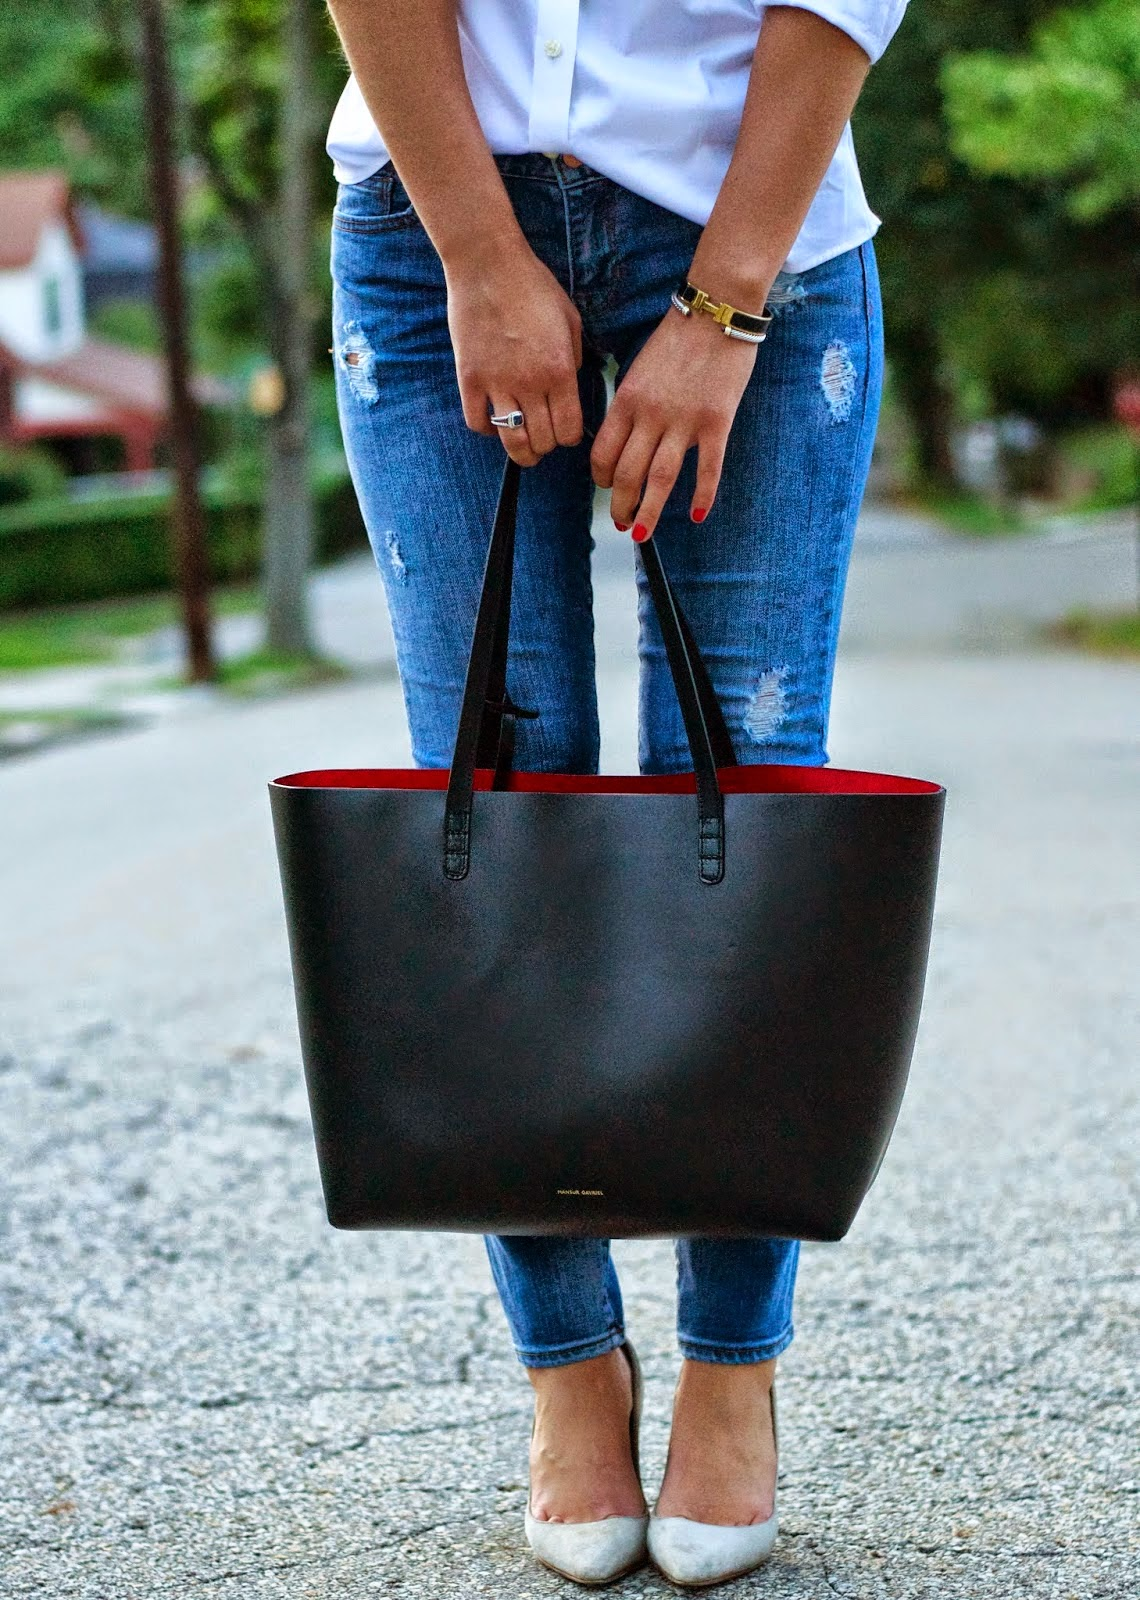 To Say I Ve Gotten My Money S Worth Out Of Mansur Gavriel Tote Would Be An Understatement Take This Bag Work Daily And Have Used It Probably A